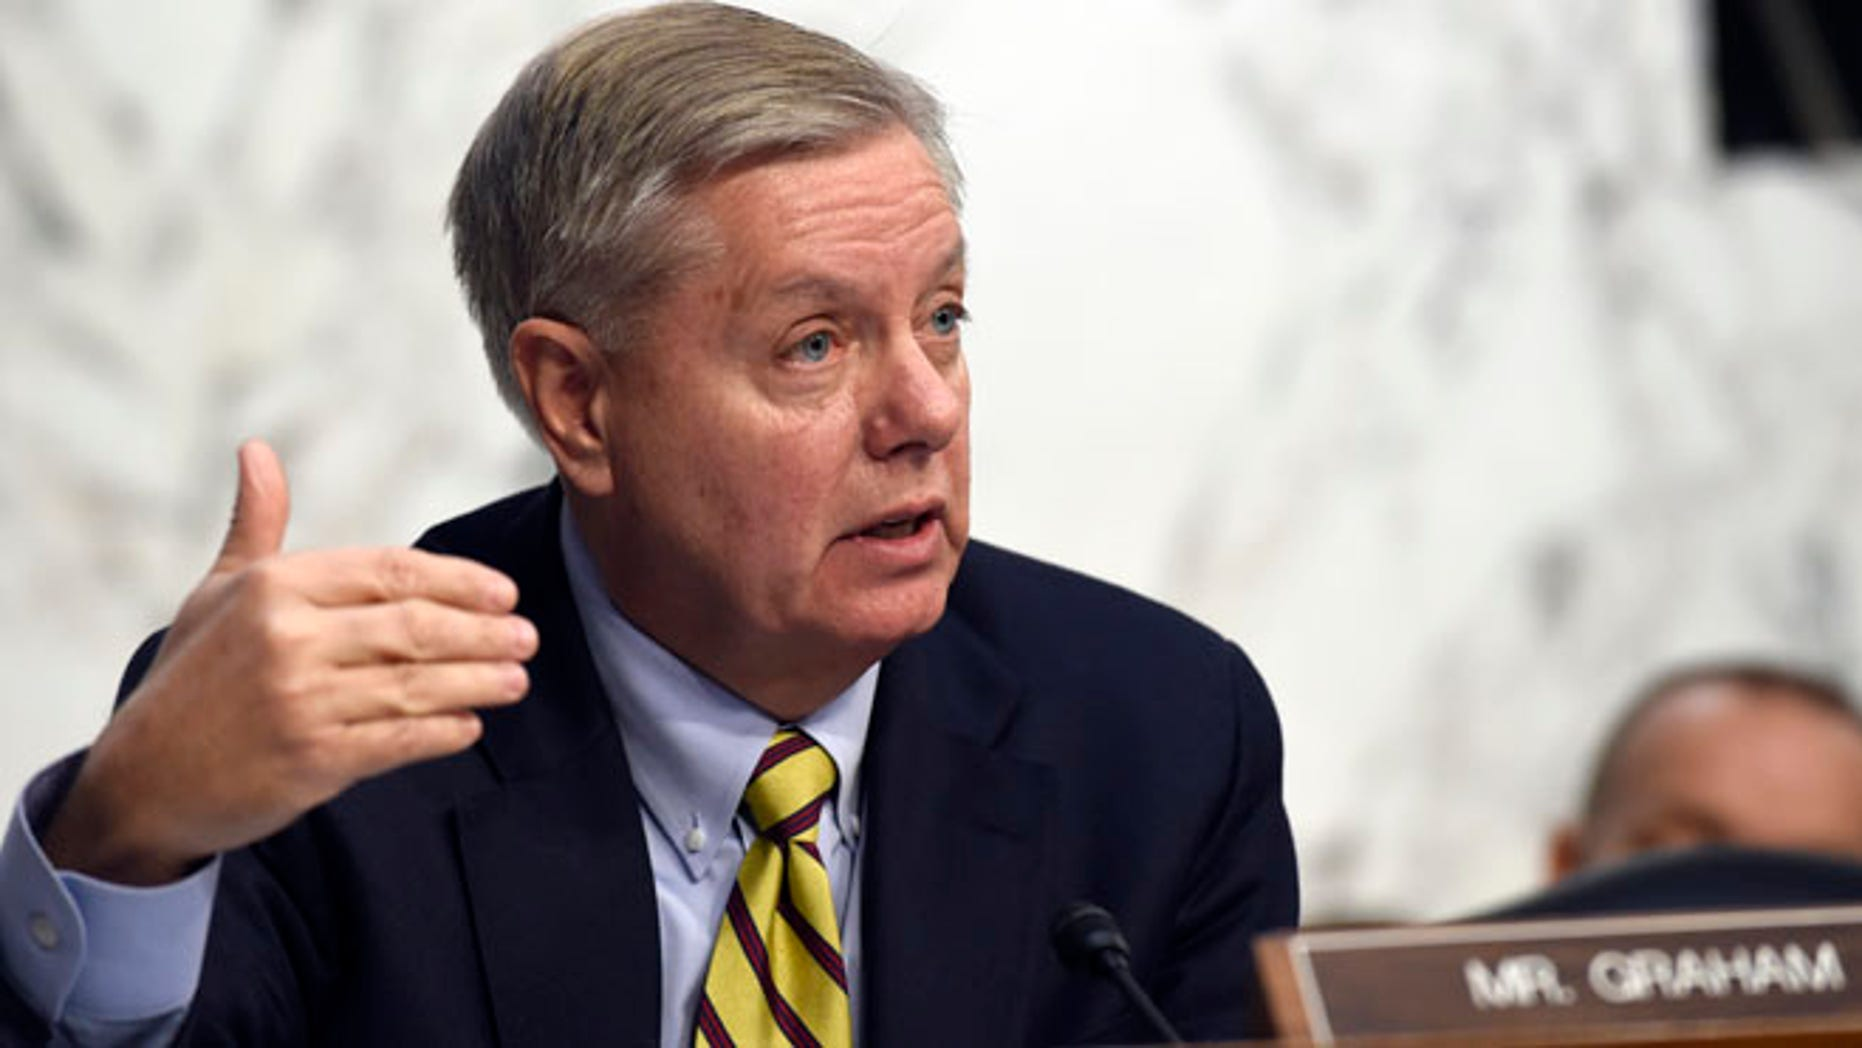 FILE: Jan. 28, 2015: Sen. Lindsey Graham, R-S.C., speaks on Capitol Hill in Washington, D.C.